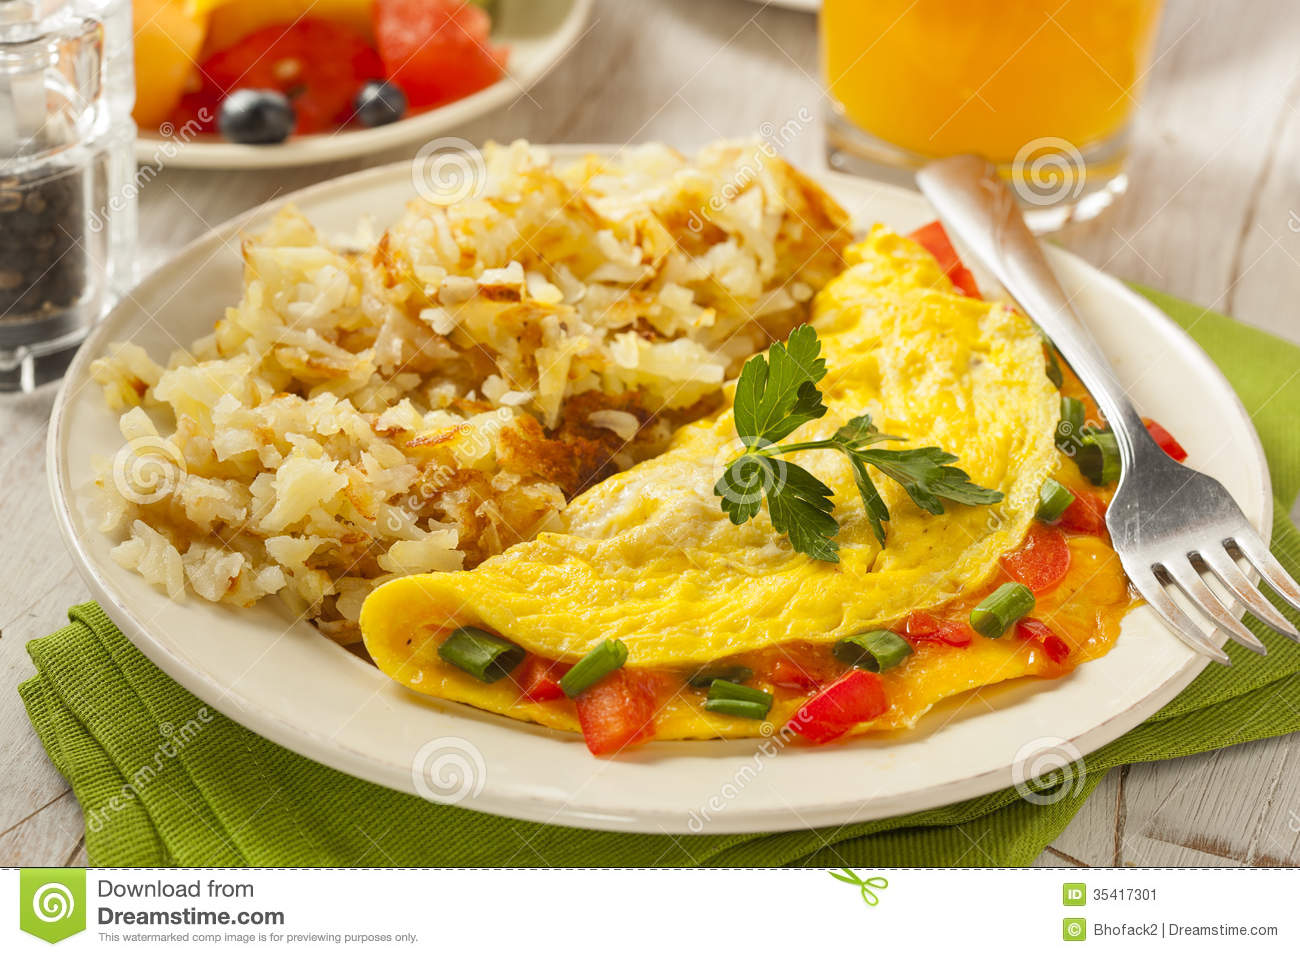 homemade organic vegetarian cheese omelette stock image image 35417301 Sandwich Clip Art sub sandwich clipart black and white